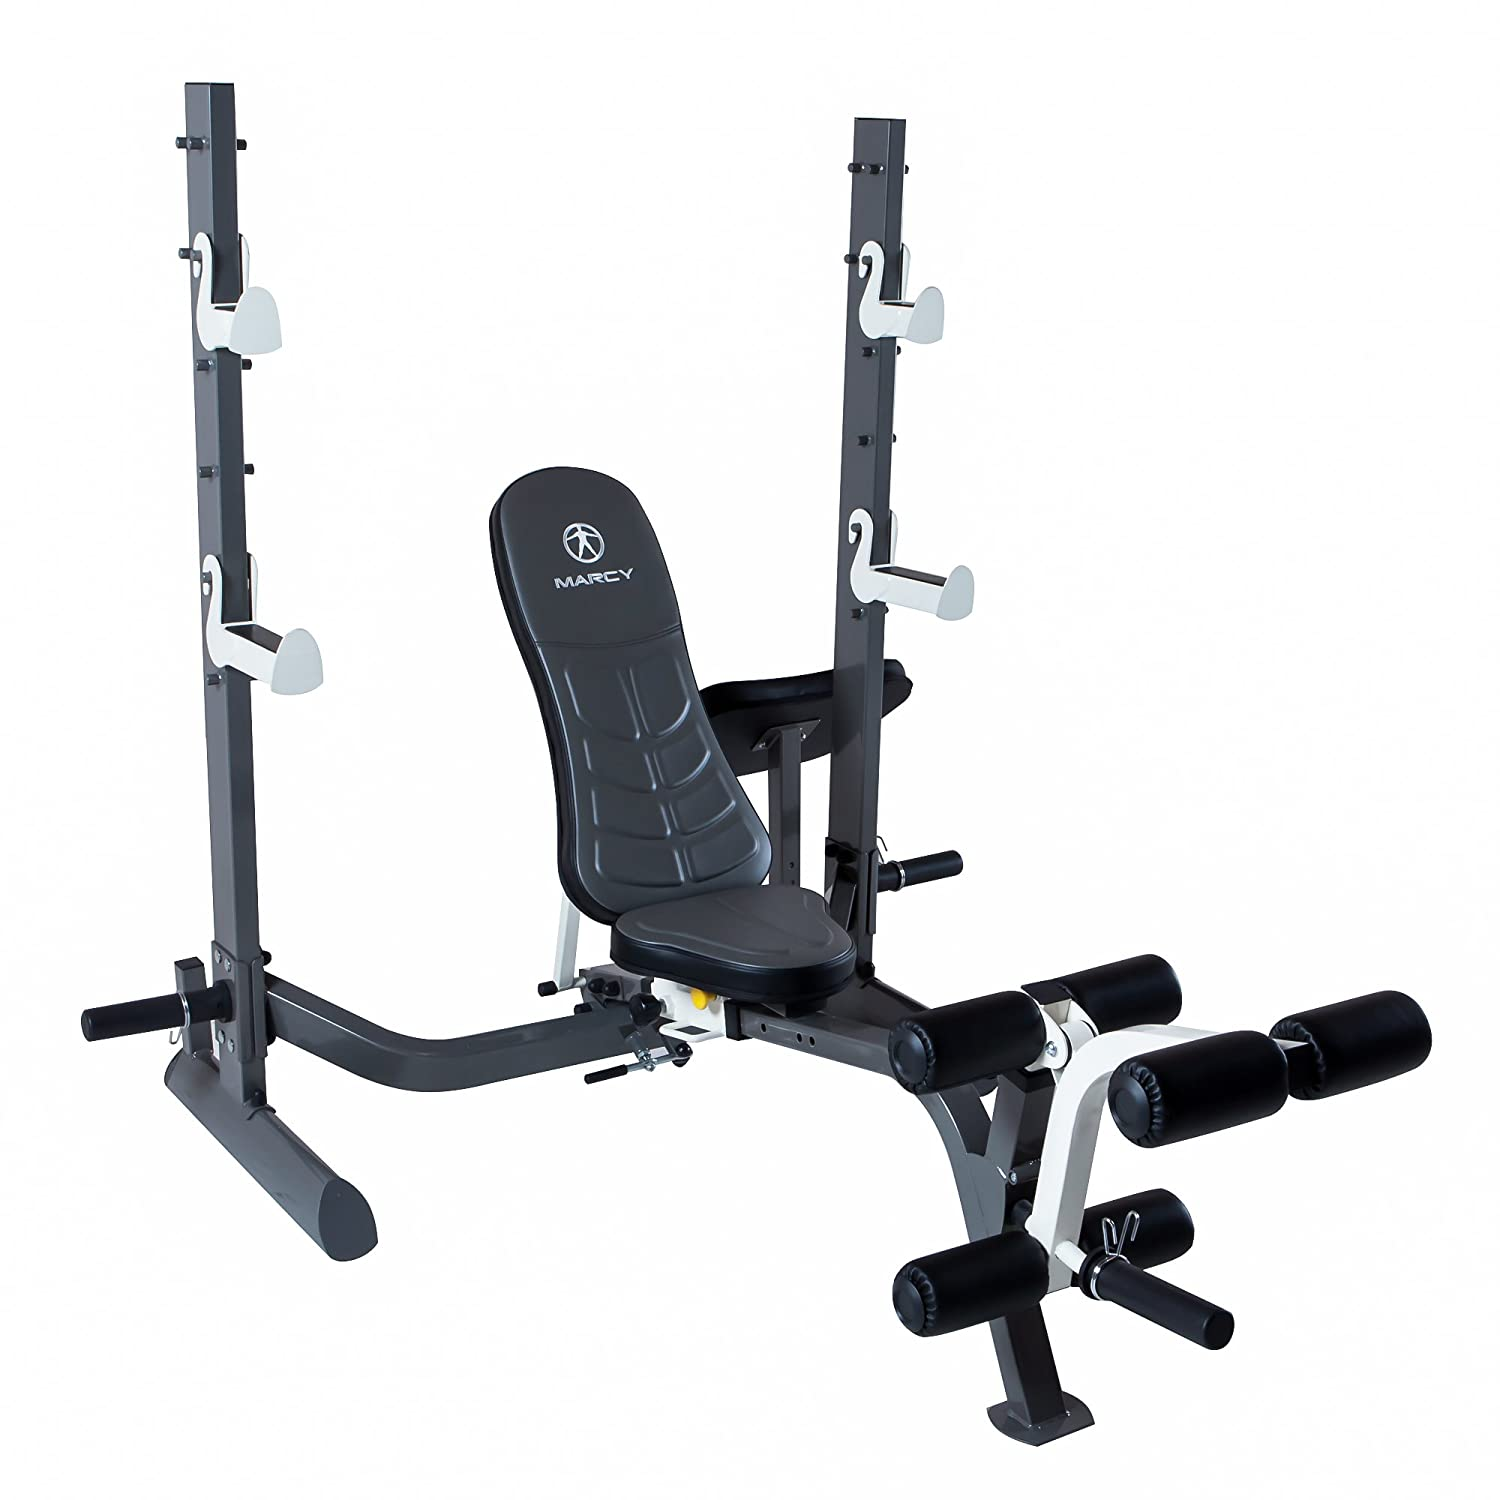 Marcy Multi Position Foldable Olympic Weight Bench